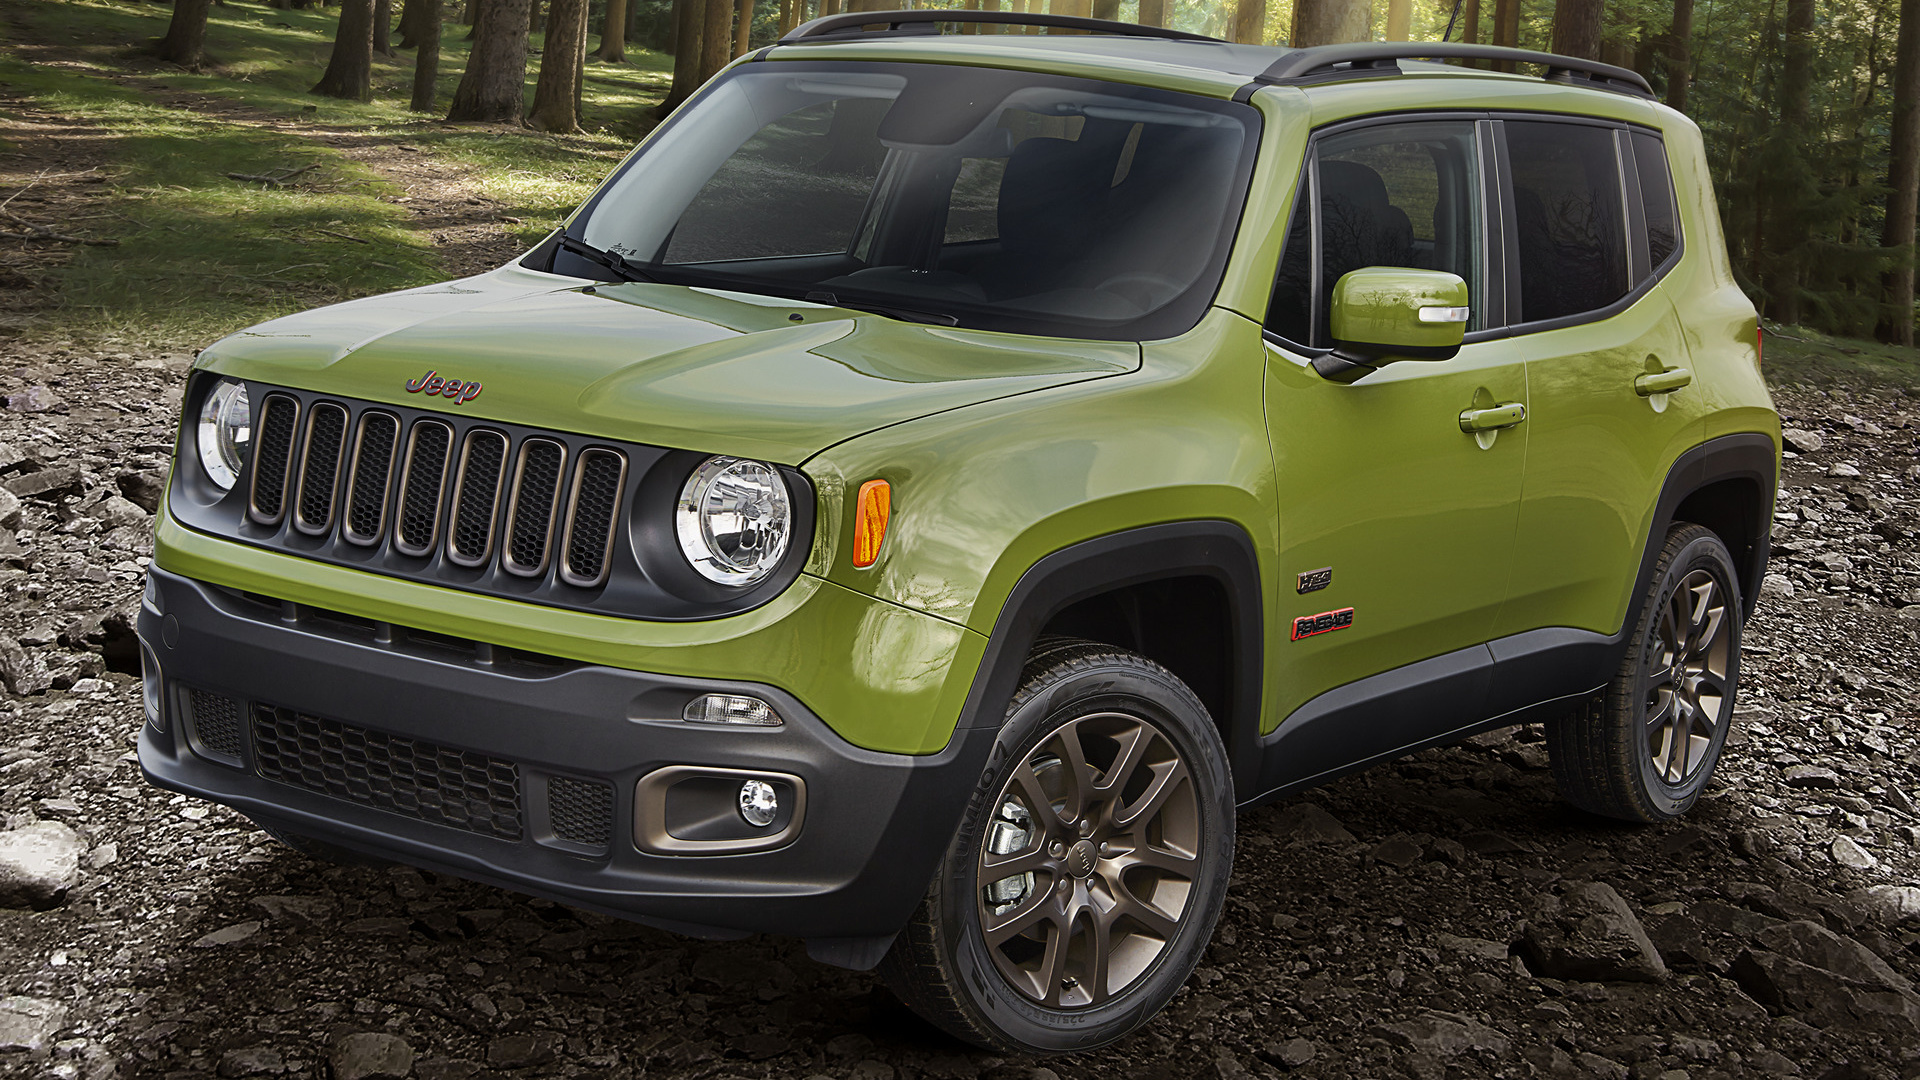 jeep renegade 75th anniversary (2016) wallpapers and hd images - car